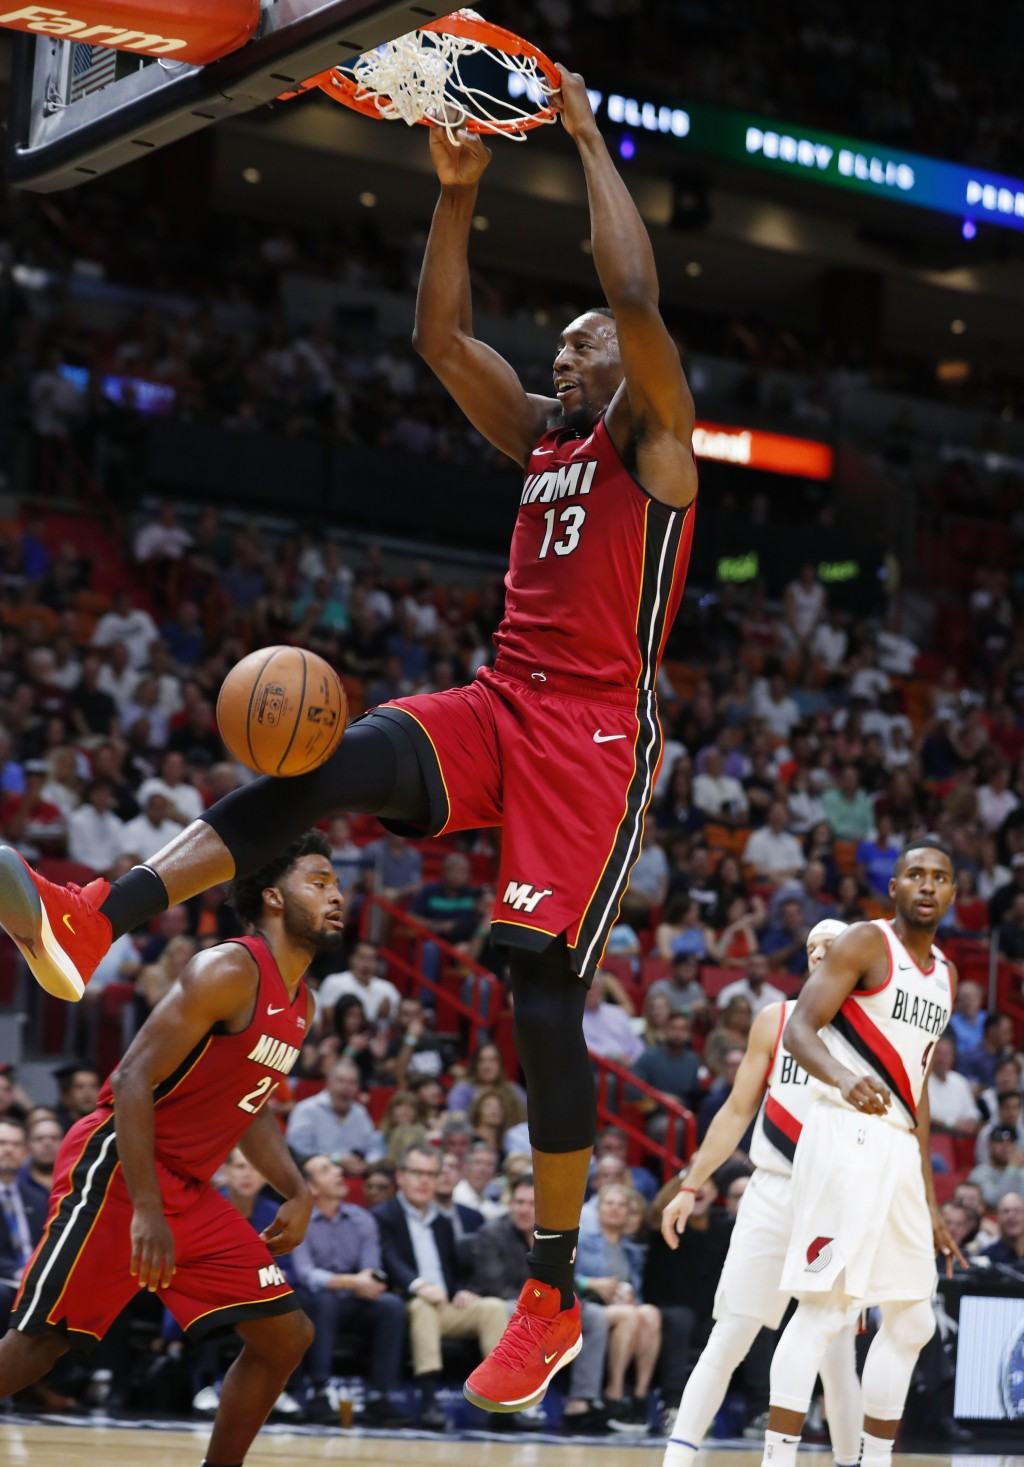 Miami Heat center Bam Adebayo (13) dunks during the first half of an NBA basketball game against the Portland Trail Blazers, Saturday, Oct. 27, 2018, ...